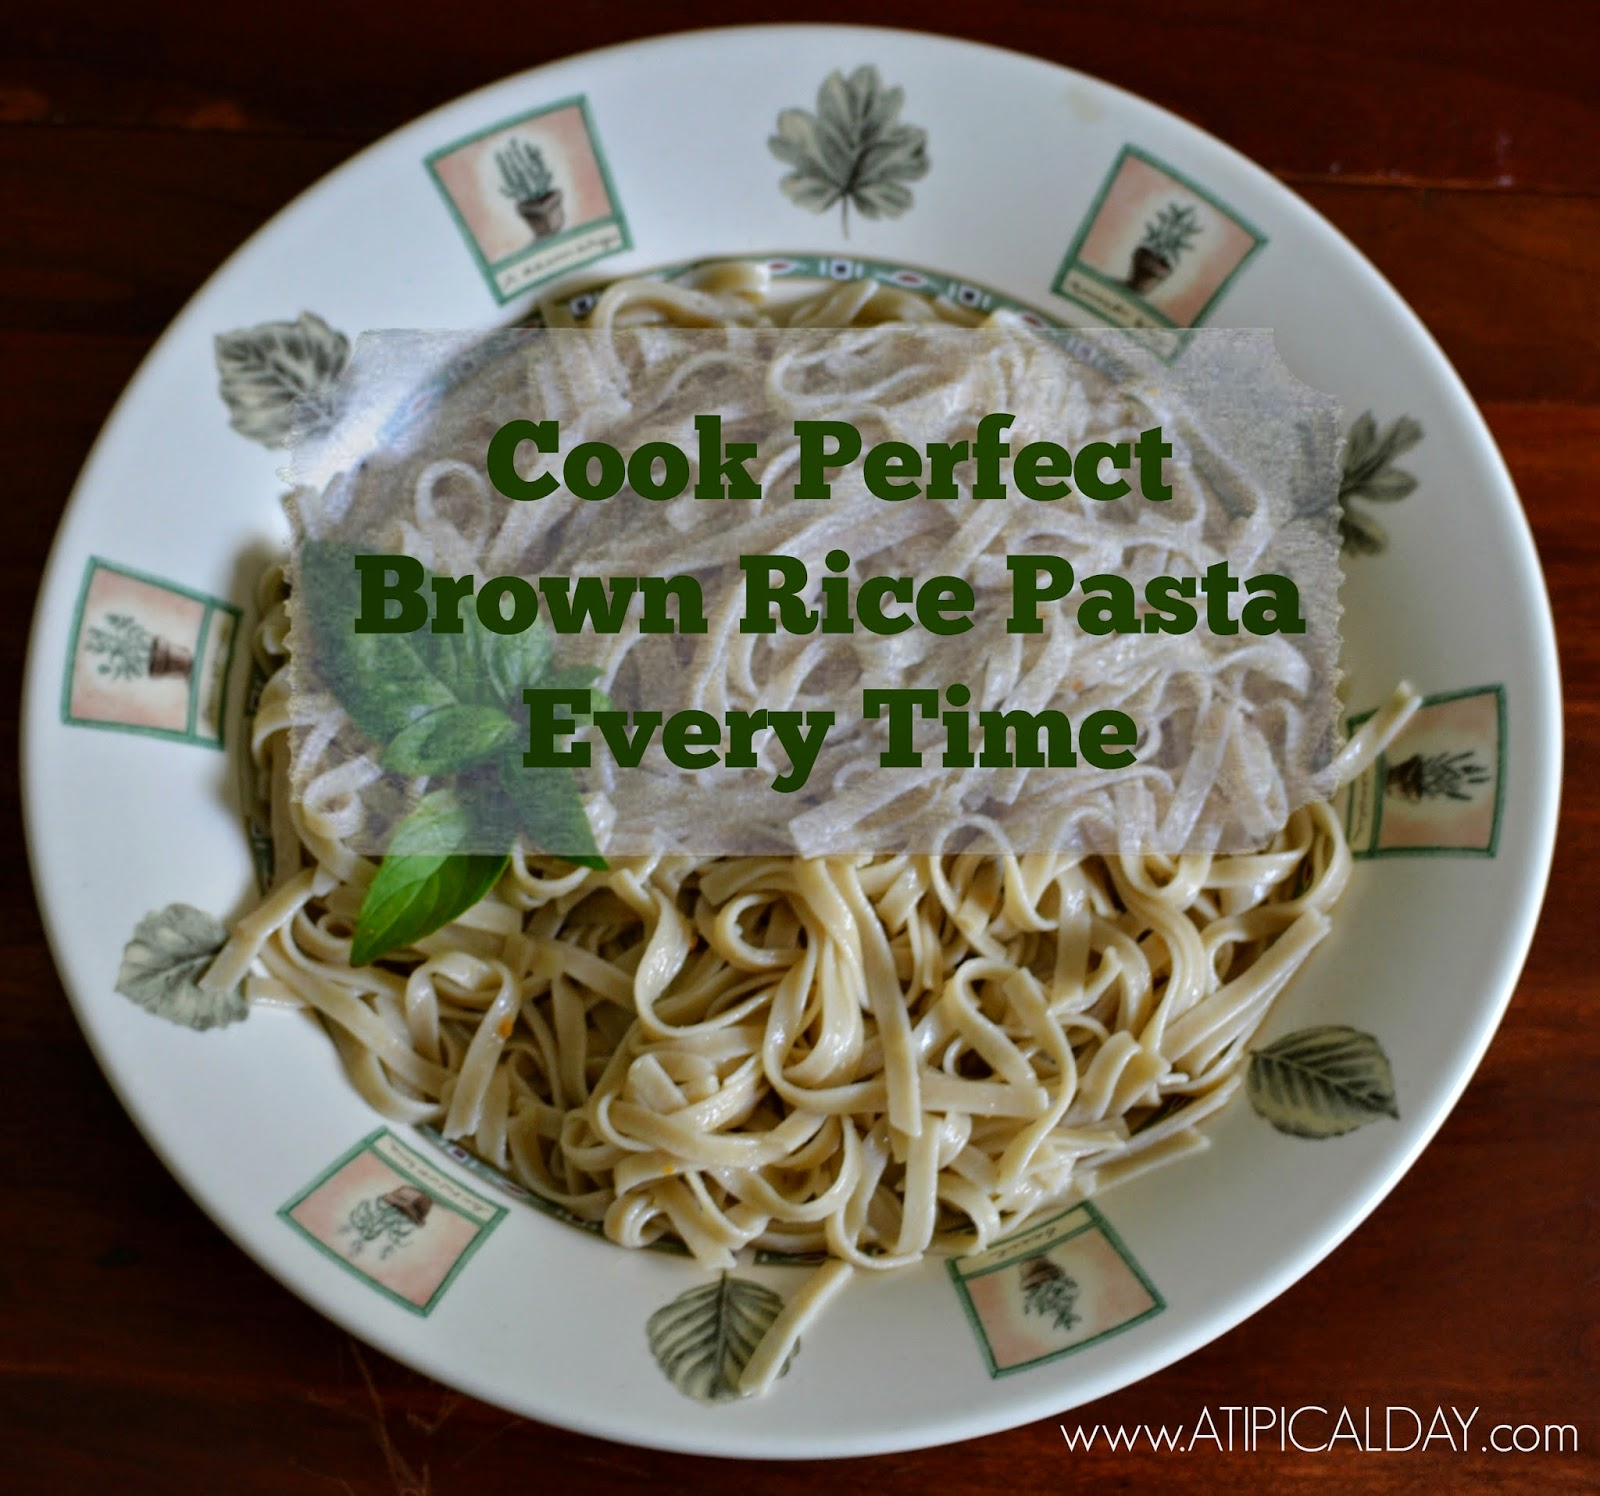 Cook Perfect Brown Rice Brown Pasta Every Time! @ATIPicalDay #glutenfree #brownricepasta #recipes #cooking #twitterparty #linkups